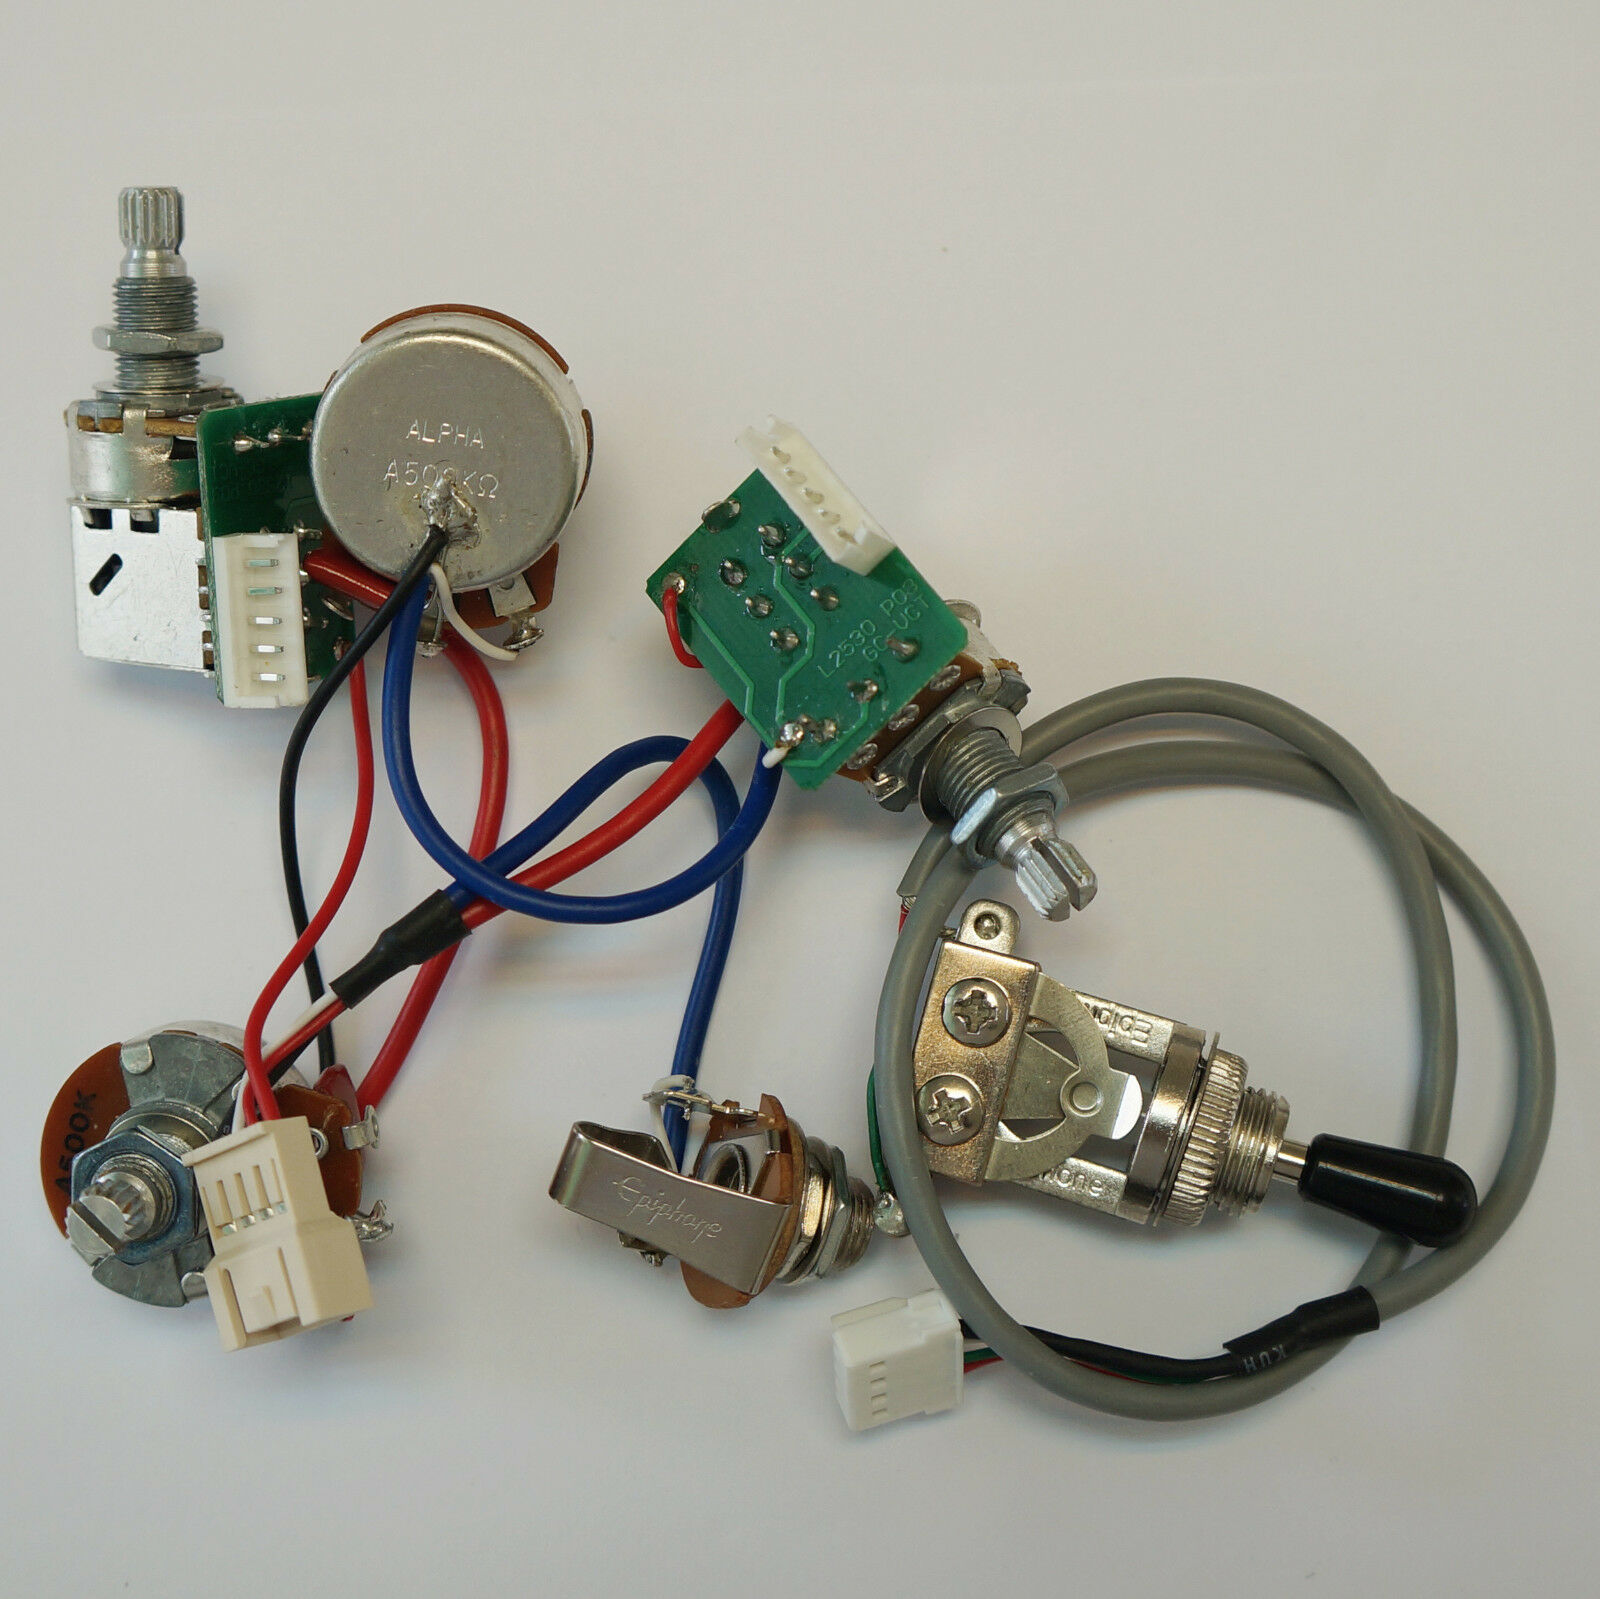 Pro Wiring Harness Pots Schematic Diagrams Toyota Pickup Real Epiphone Push Pull Alpha Switch Fit 1990